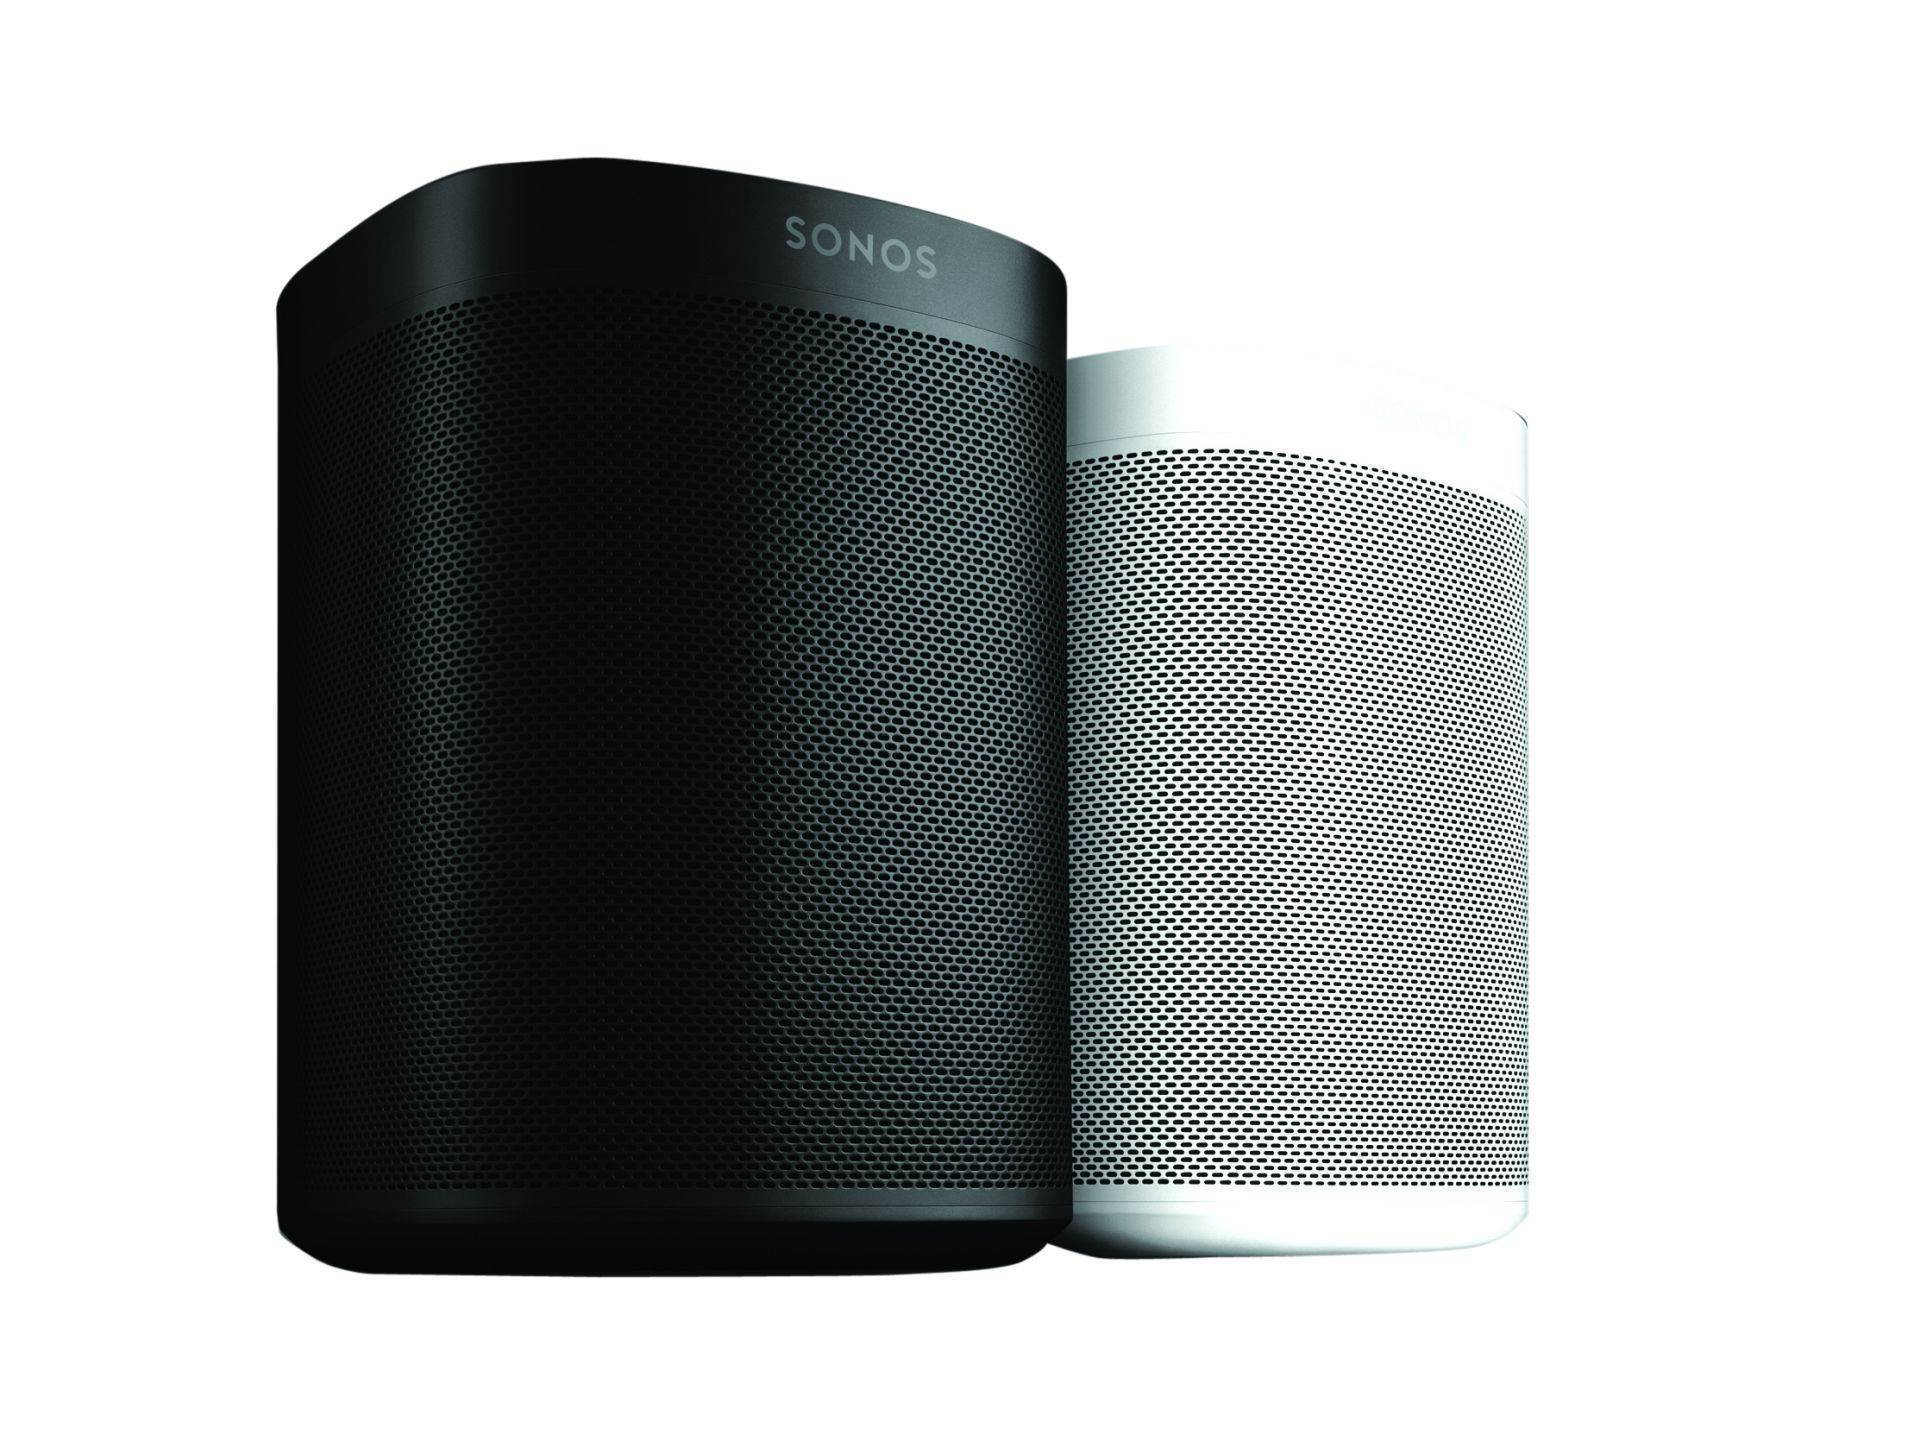 review sonos one smart speaker audio pc tech authority. Black Bedroom Furniture Sets. Home Design Ideas